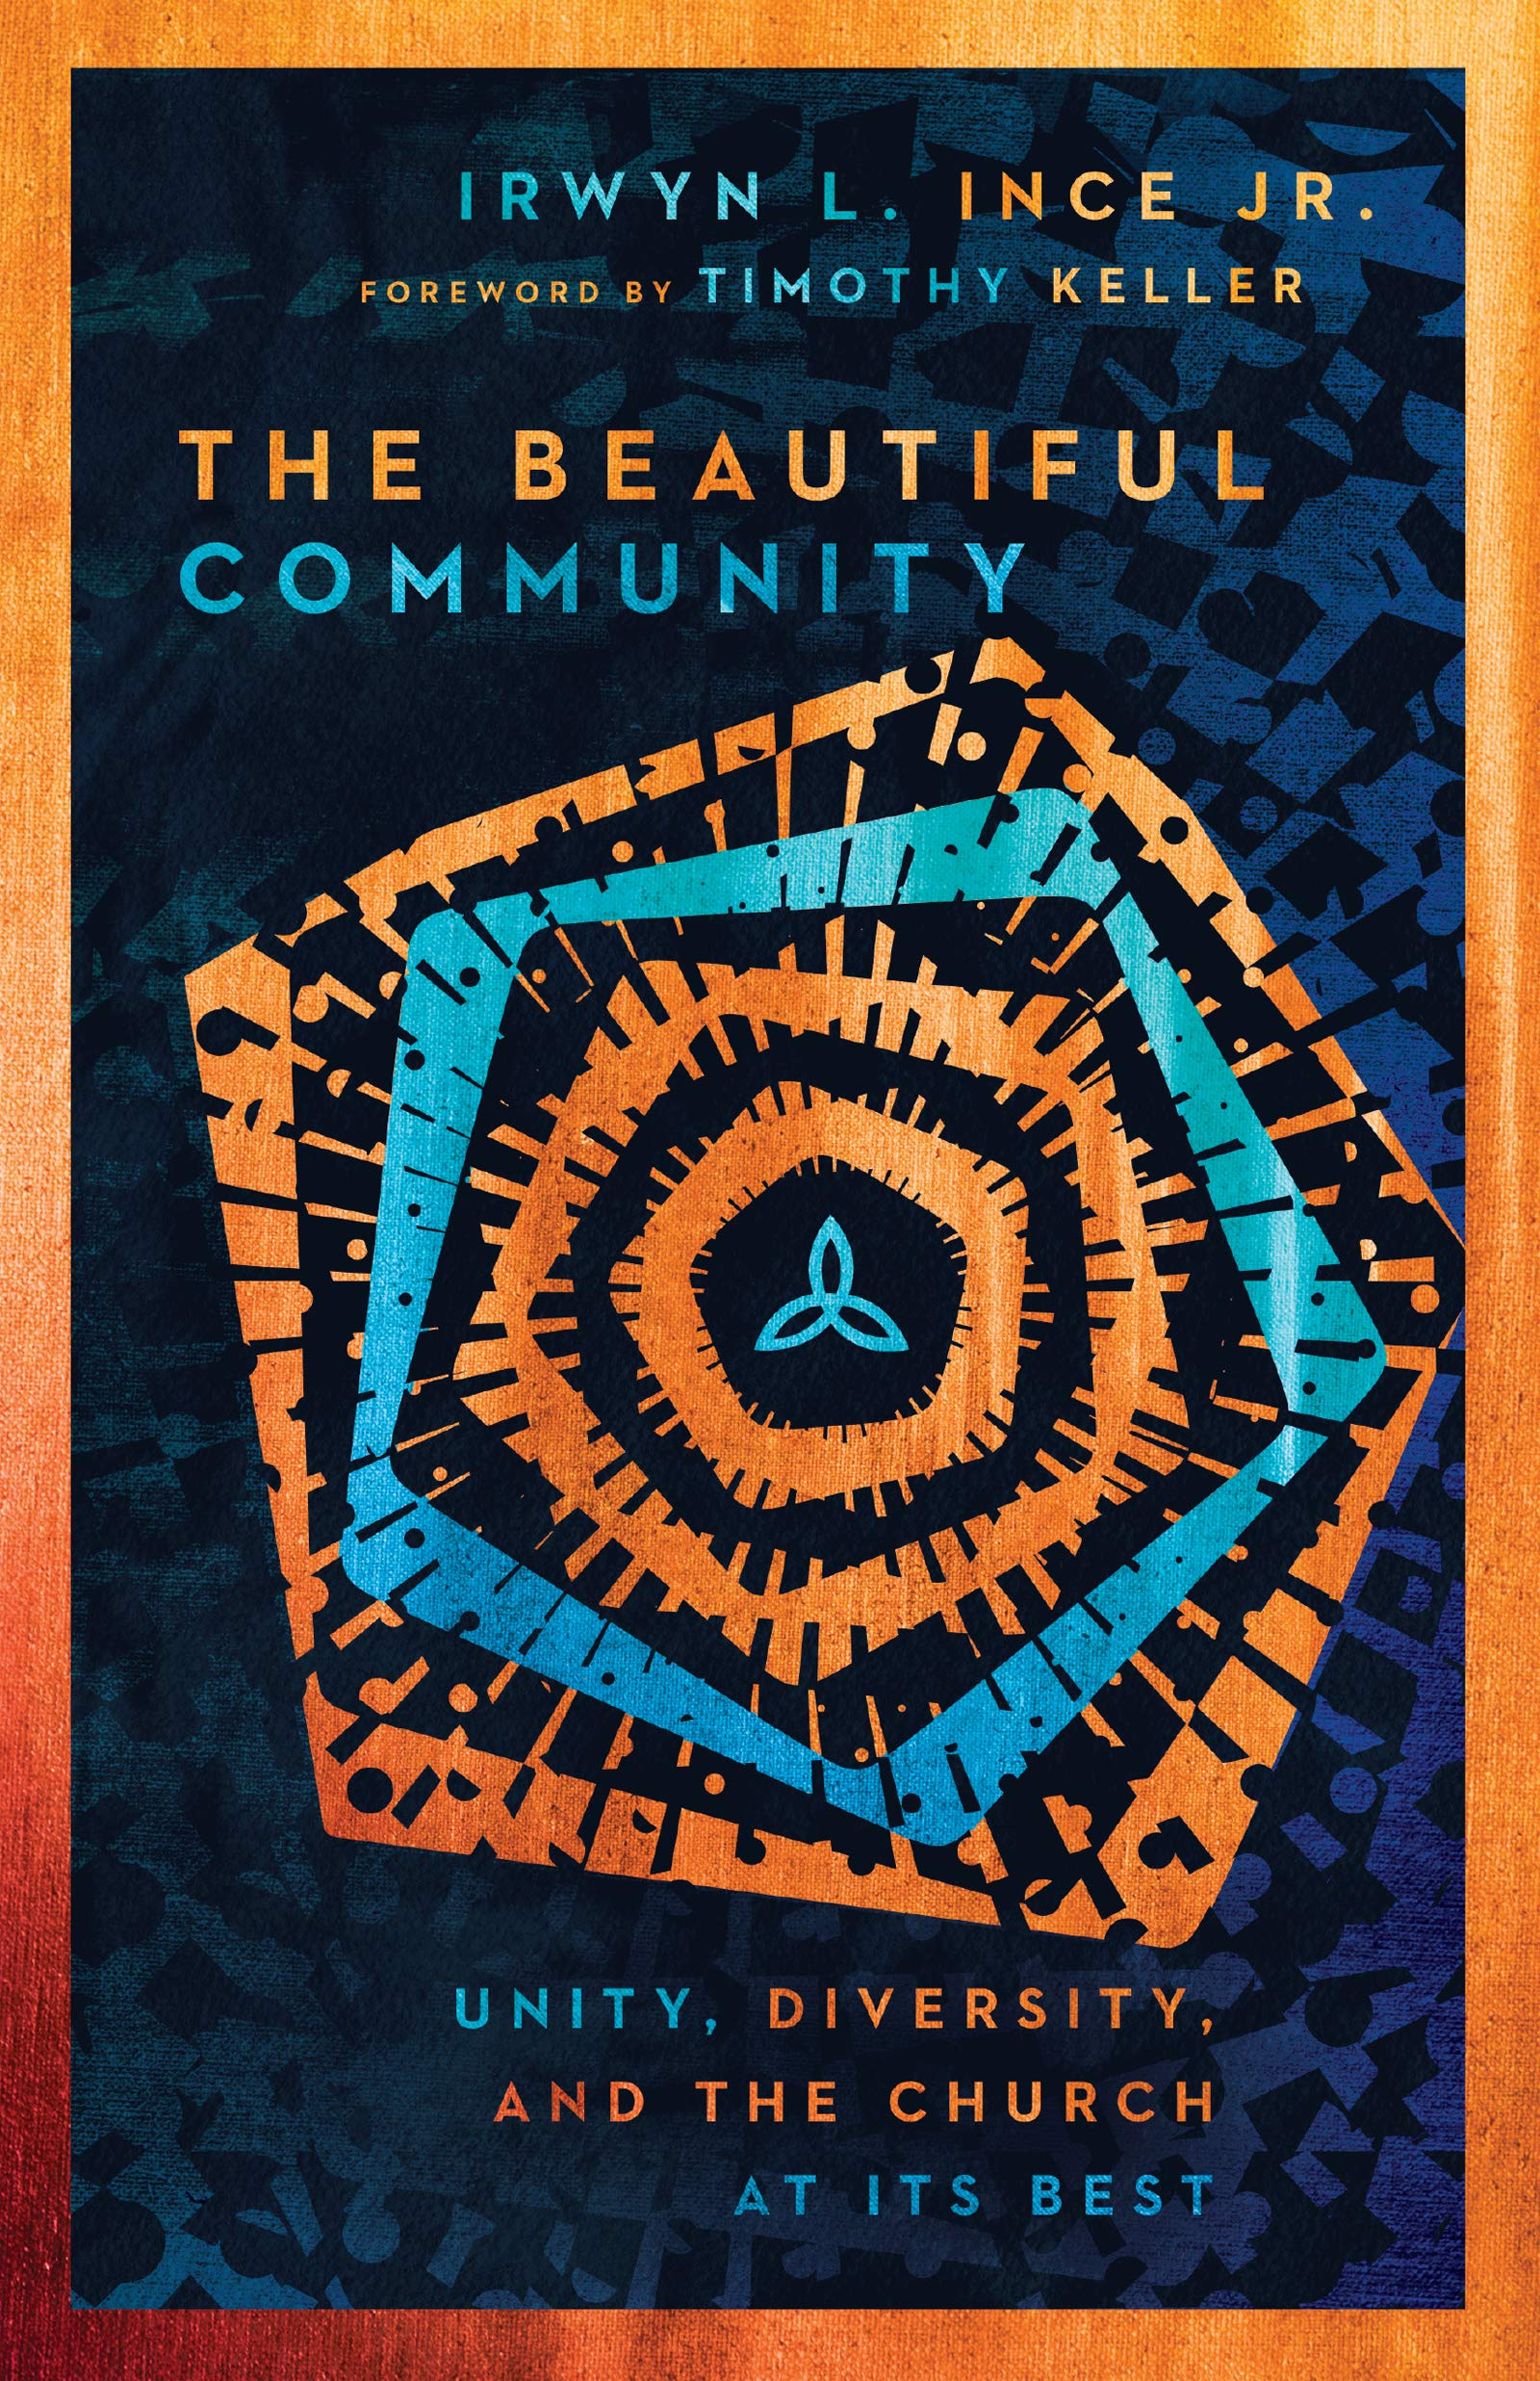 The Beautiful Community: Unity, Diversity, and the Church at Its Best: Ince  Jr., Irwyn L., Keller, Timothy: 9780830848317: Amazon.com: Books